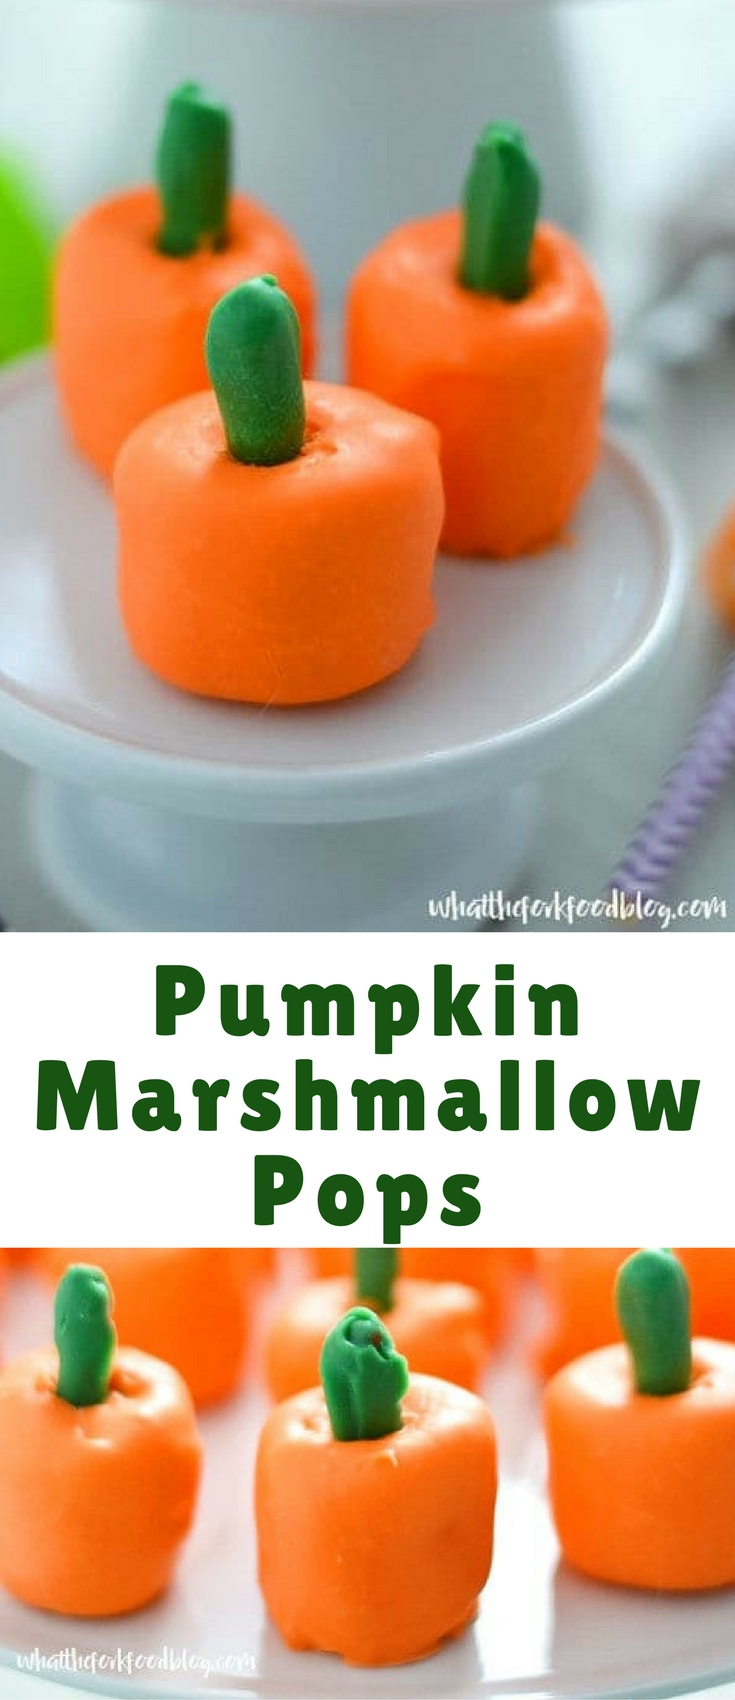 These fun Pumpkin Marshmallow Pops are perfect for Fall or Halloween Parties or even Thanksgiving. They're cute, festive, and easy to make!